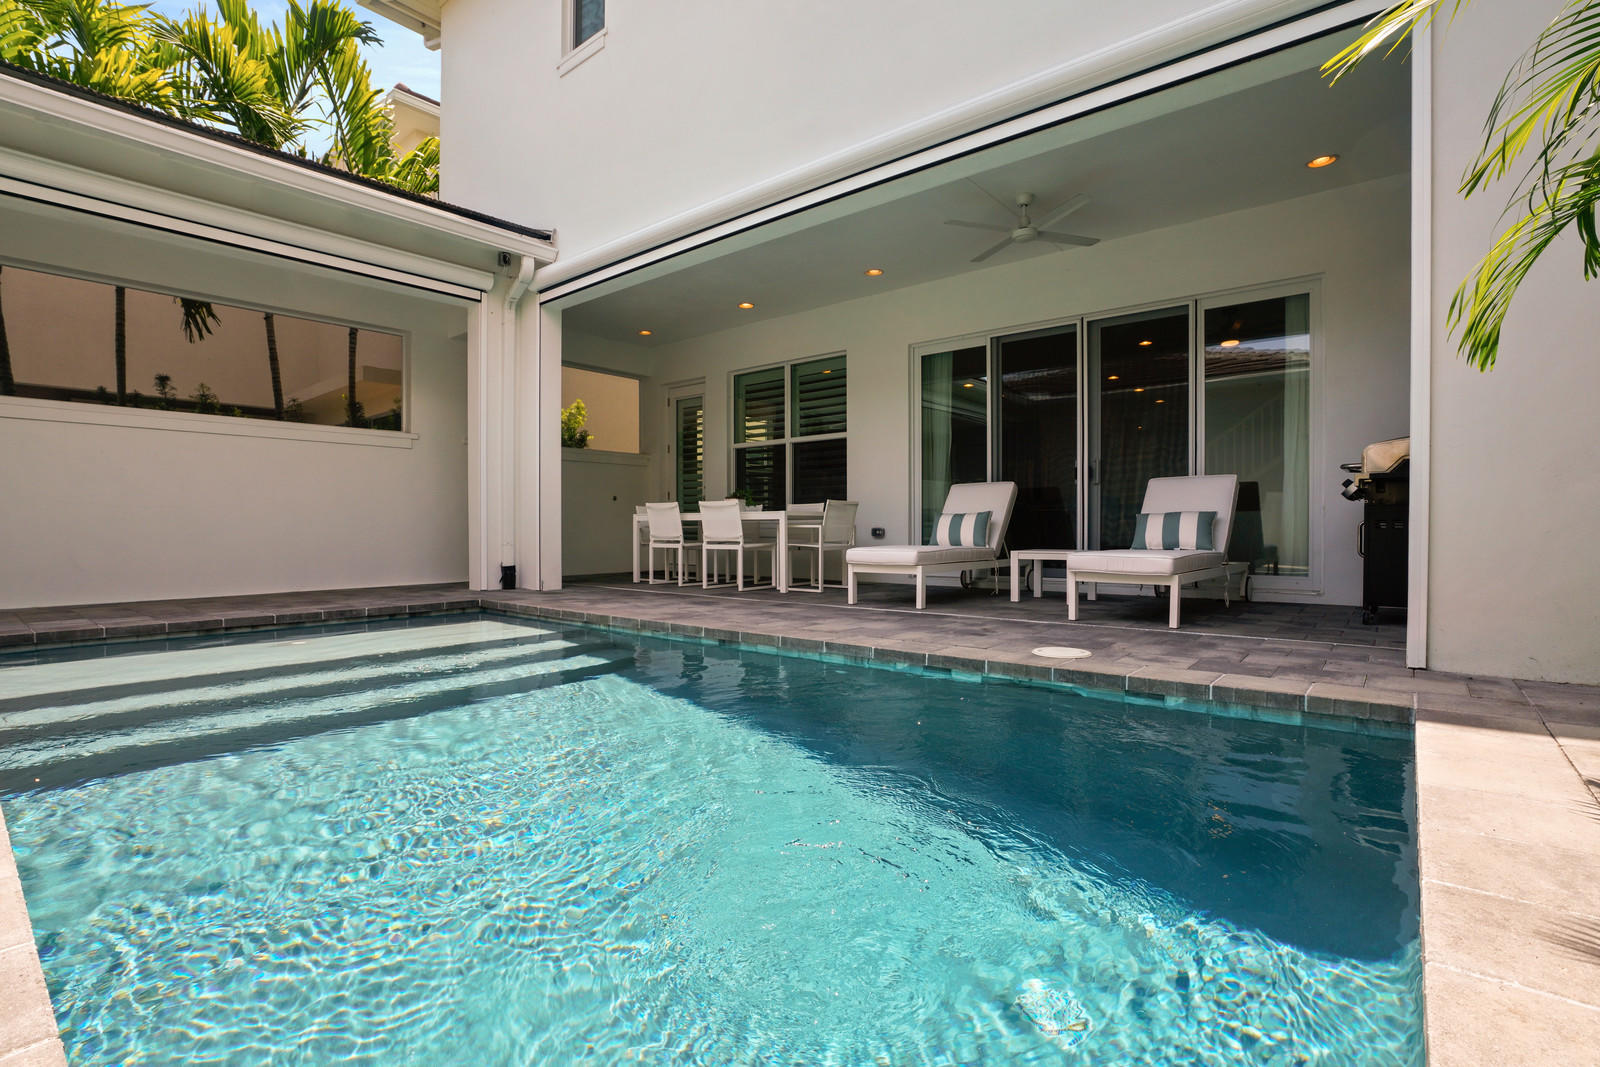 New Home for sale at 5025 Grandiflora Road in Palm Beach Gardens